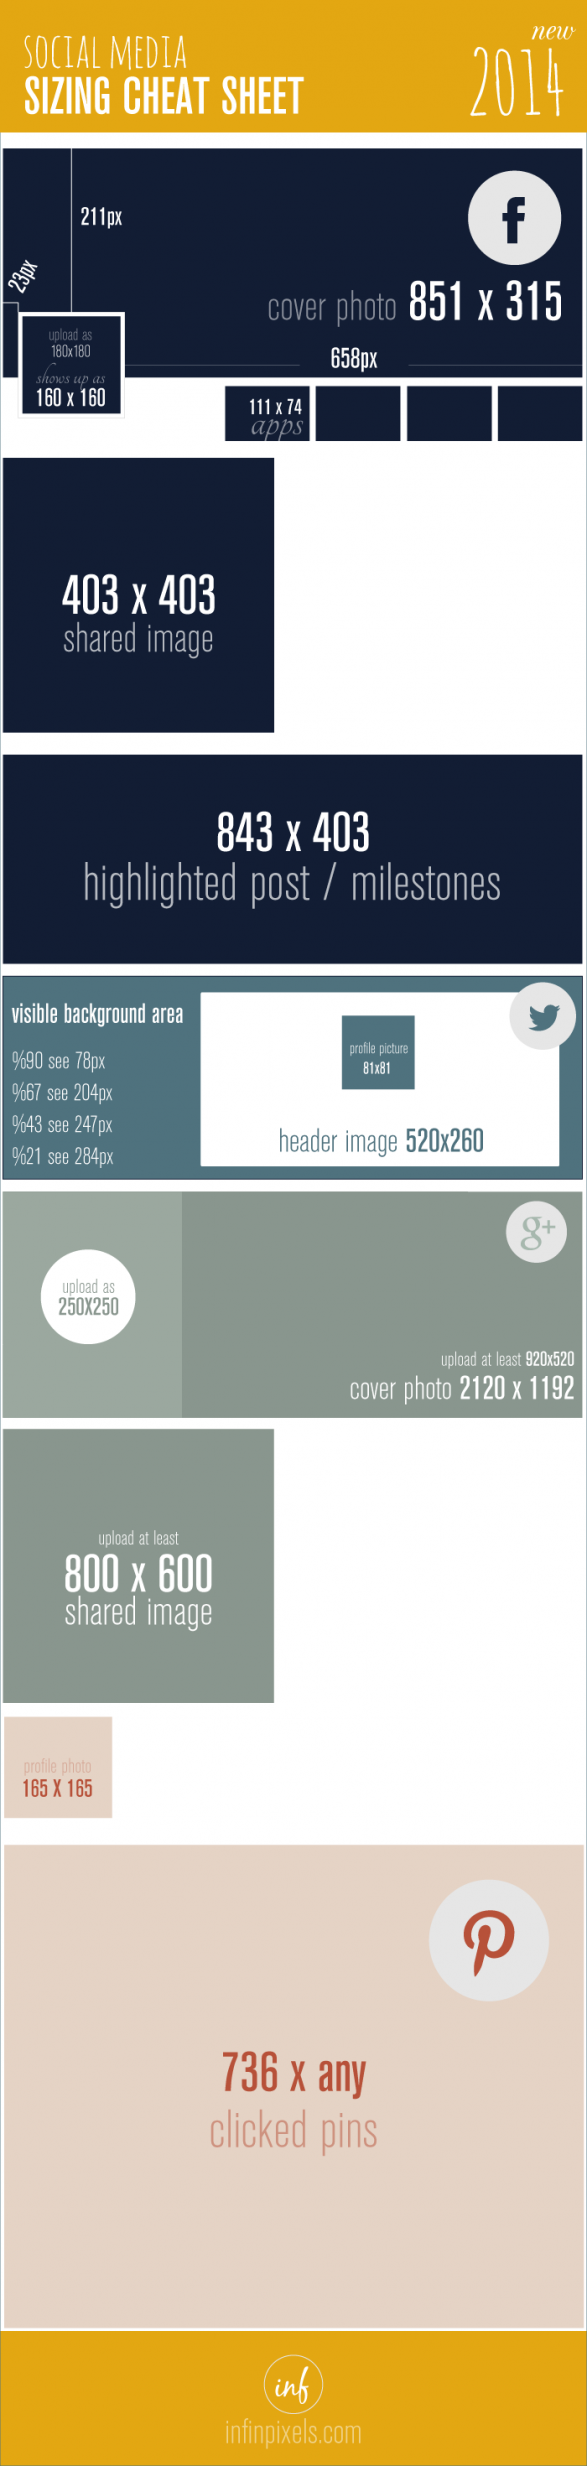 Social Media Sizing Cheat Sheet - 2014